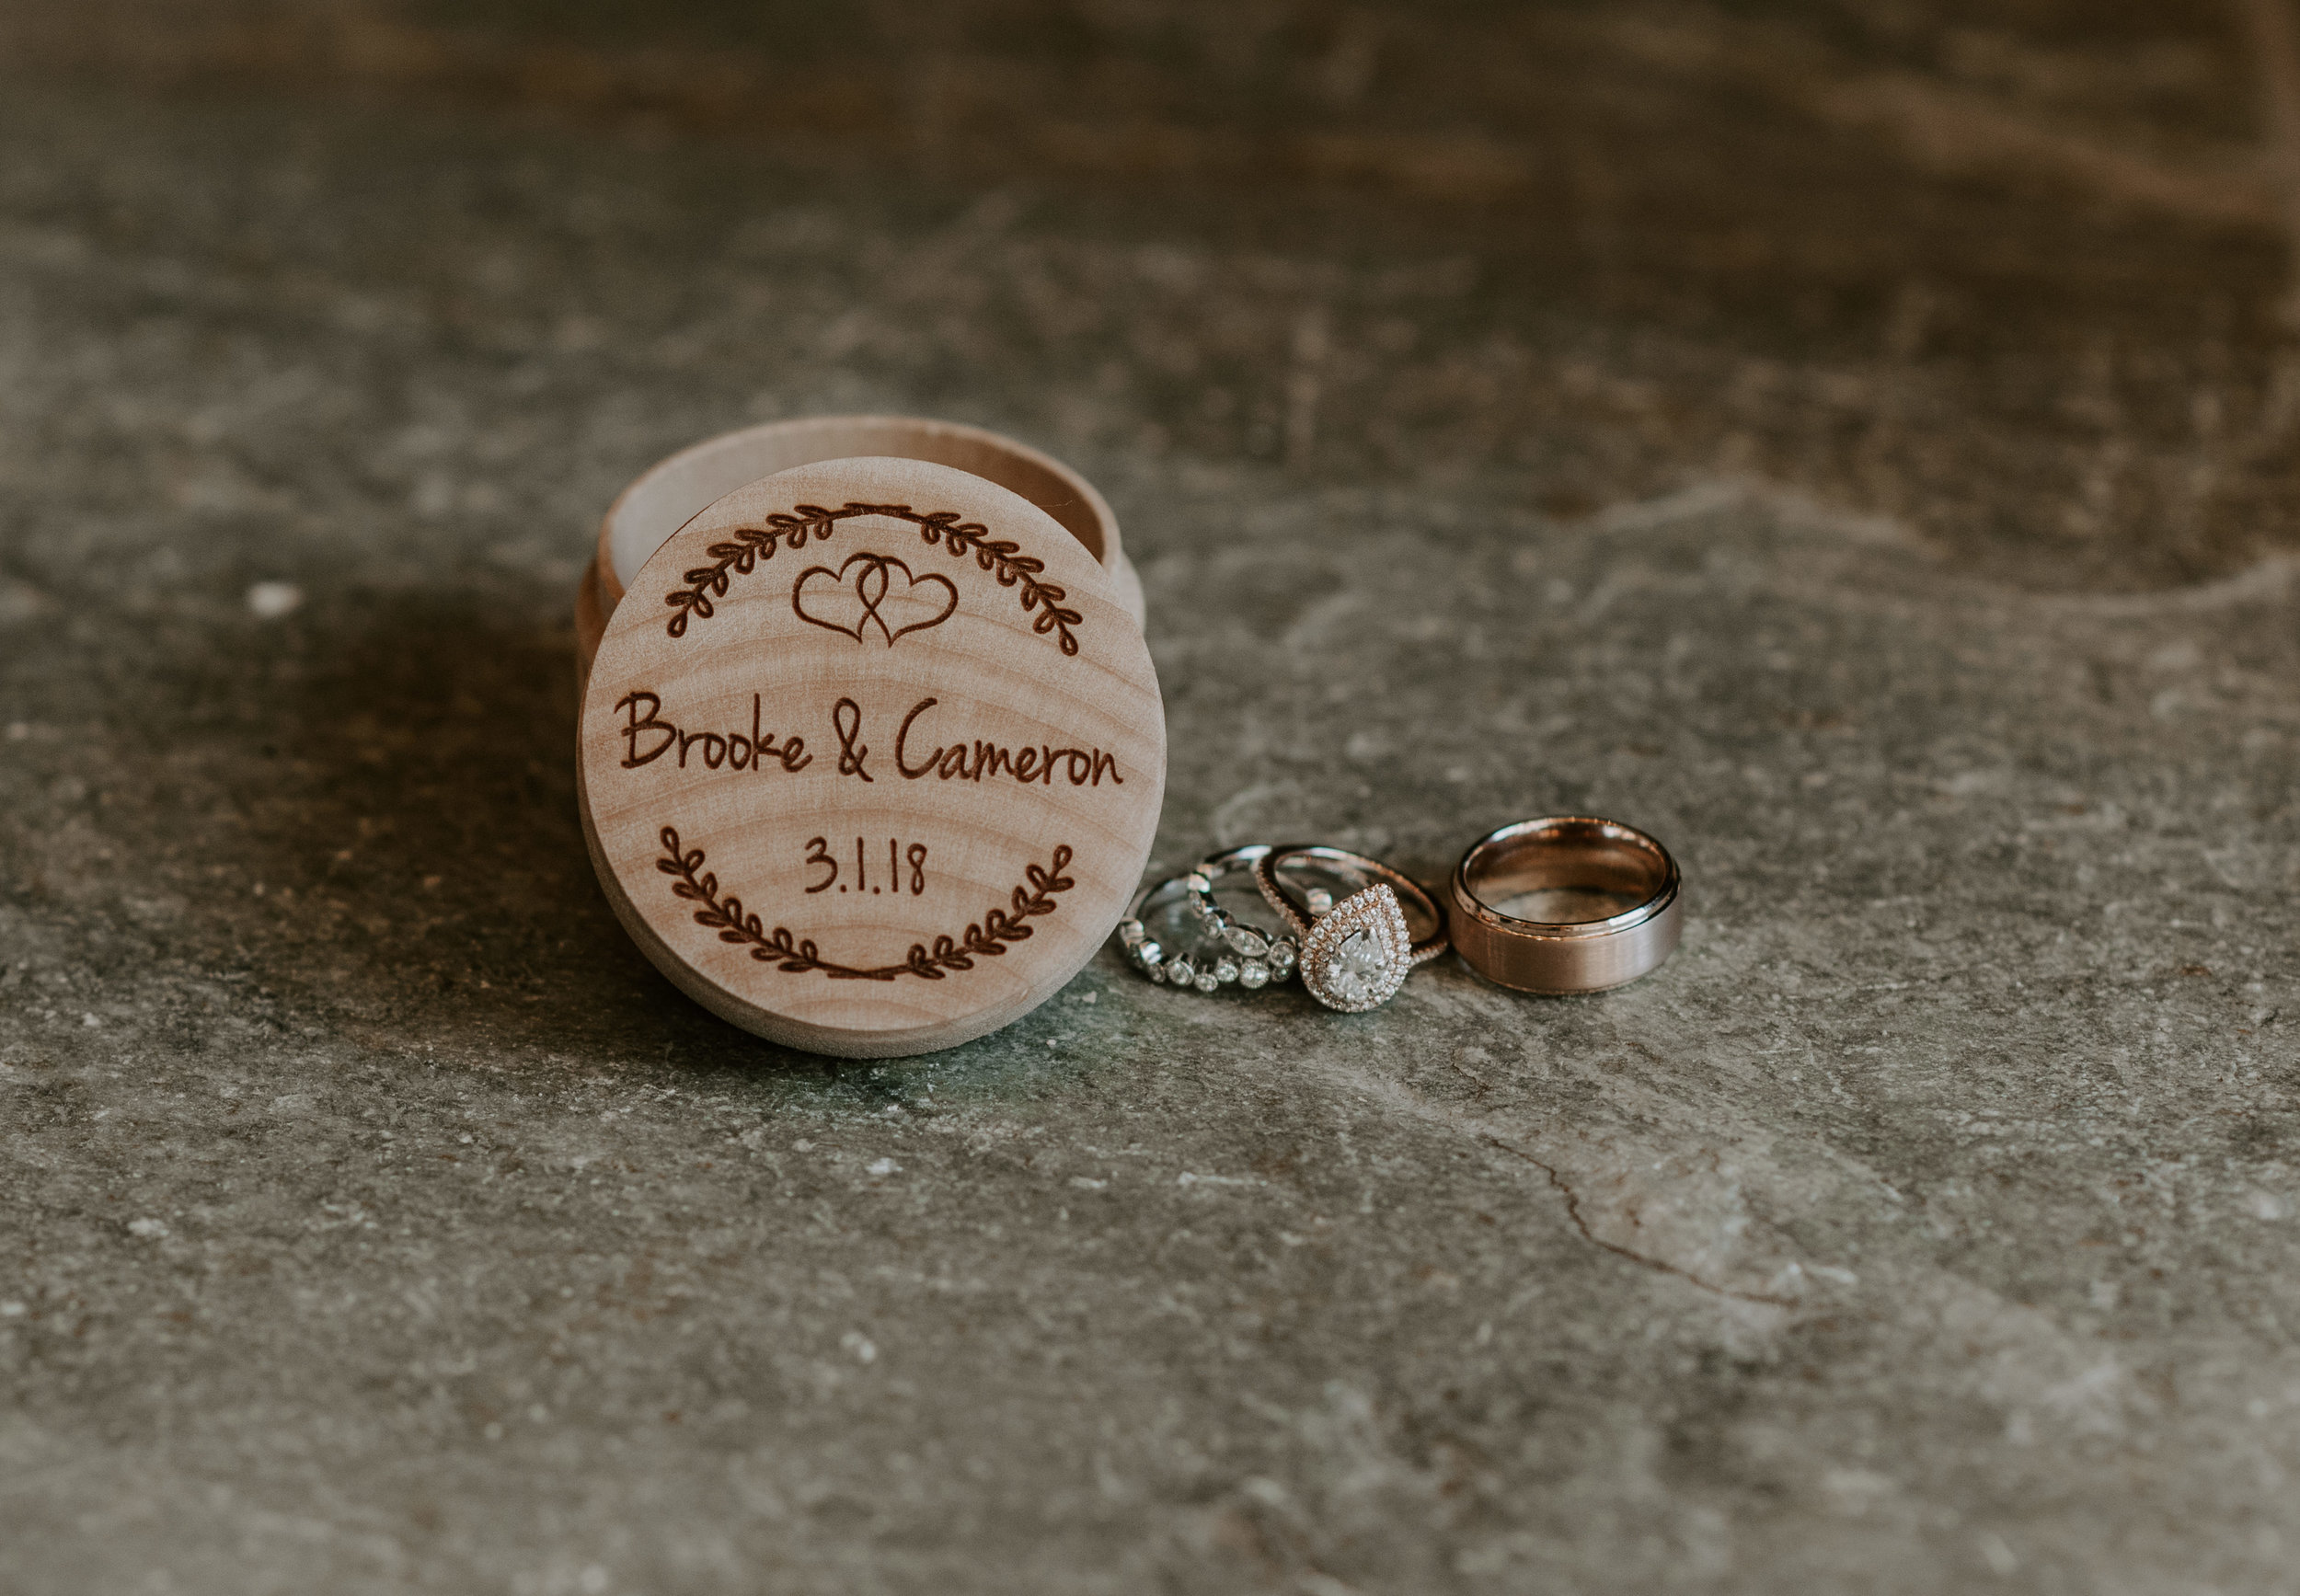 Bride and Groom's wedding rings for their elopement at Sapphire Point.